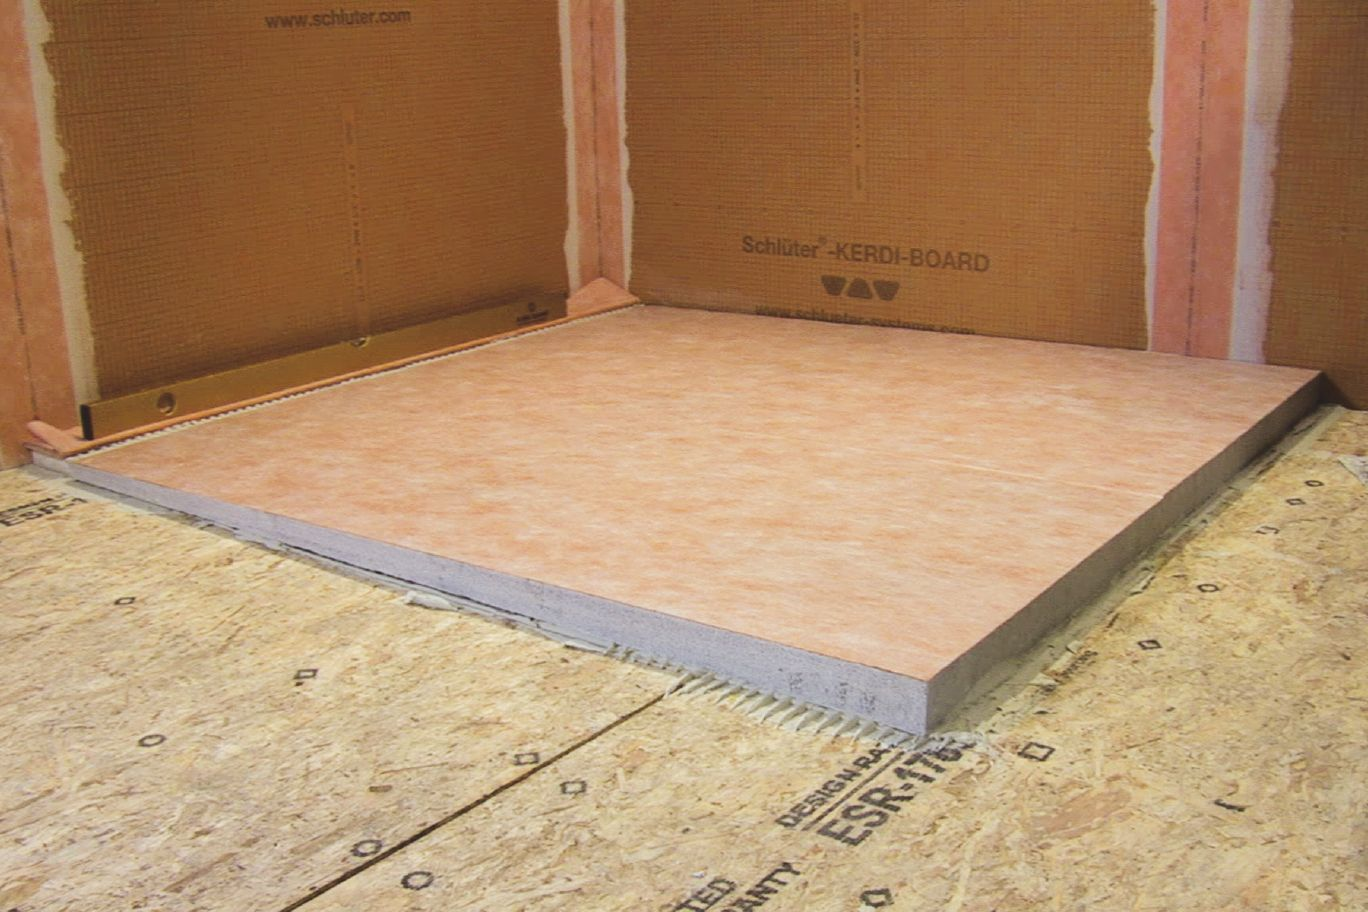 Schluter 174 Kerdi Shower L Ls Prefabricated Substrates